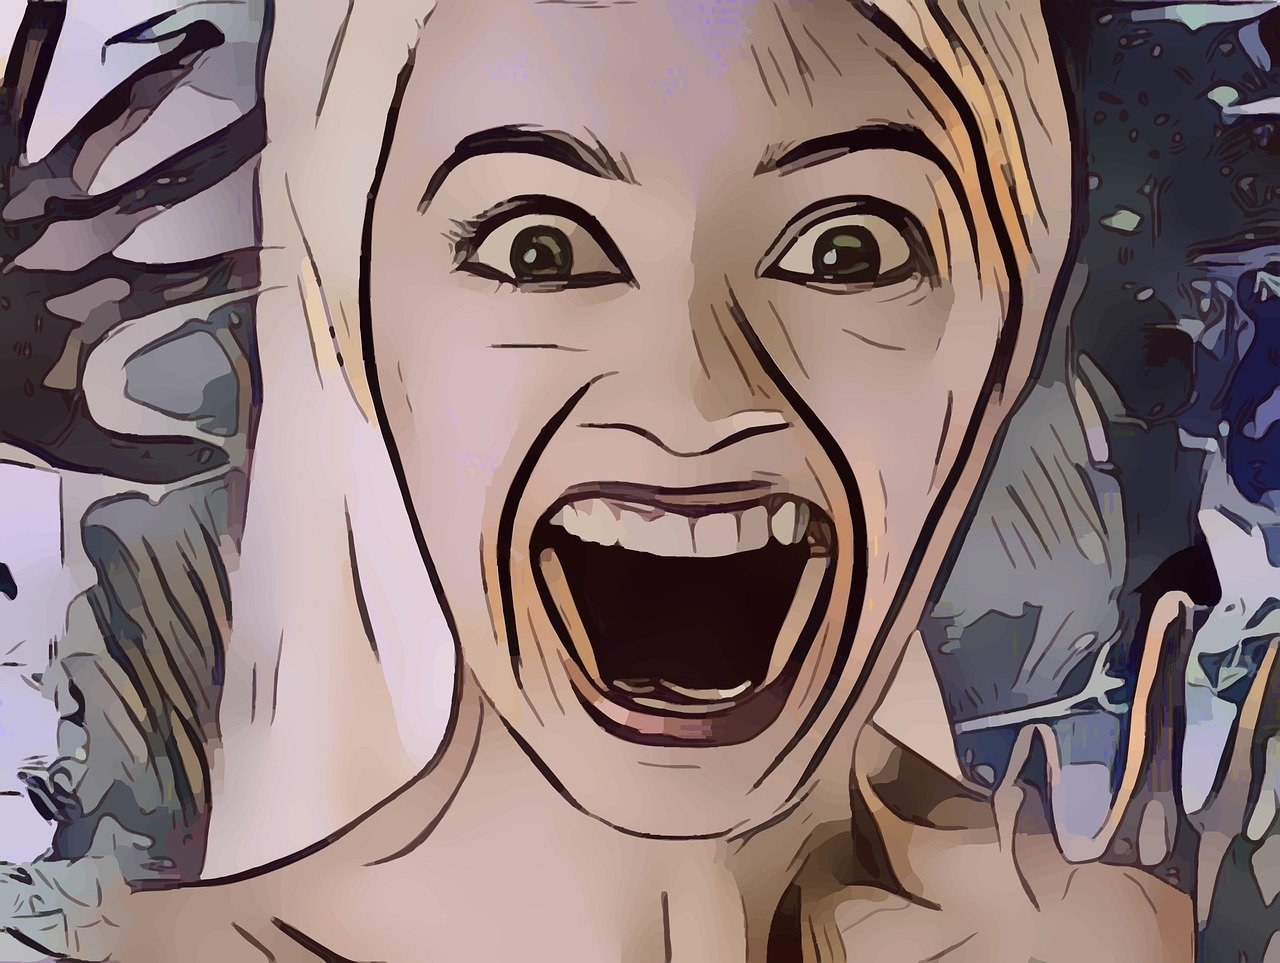 graphic novel style cartoon of woman appearing to scream with wide open mouth and startled eyes.